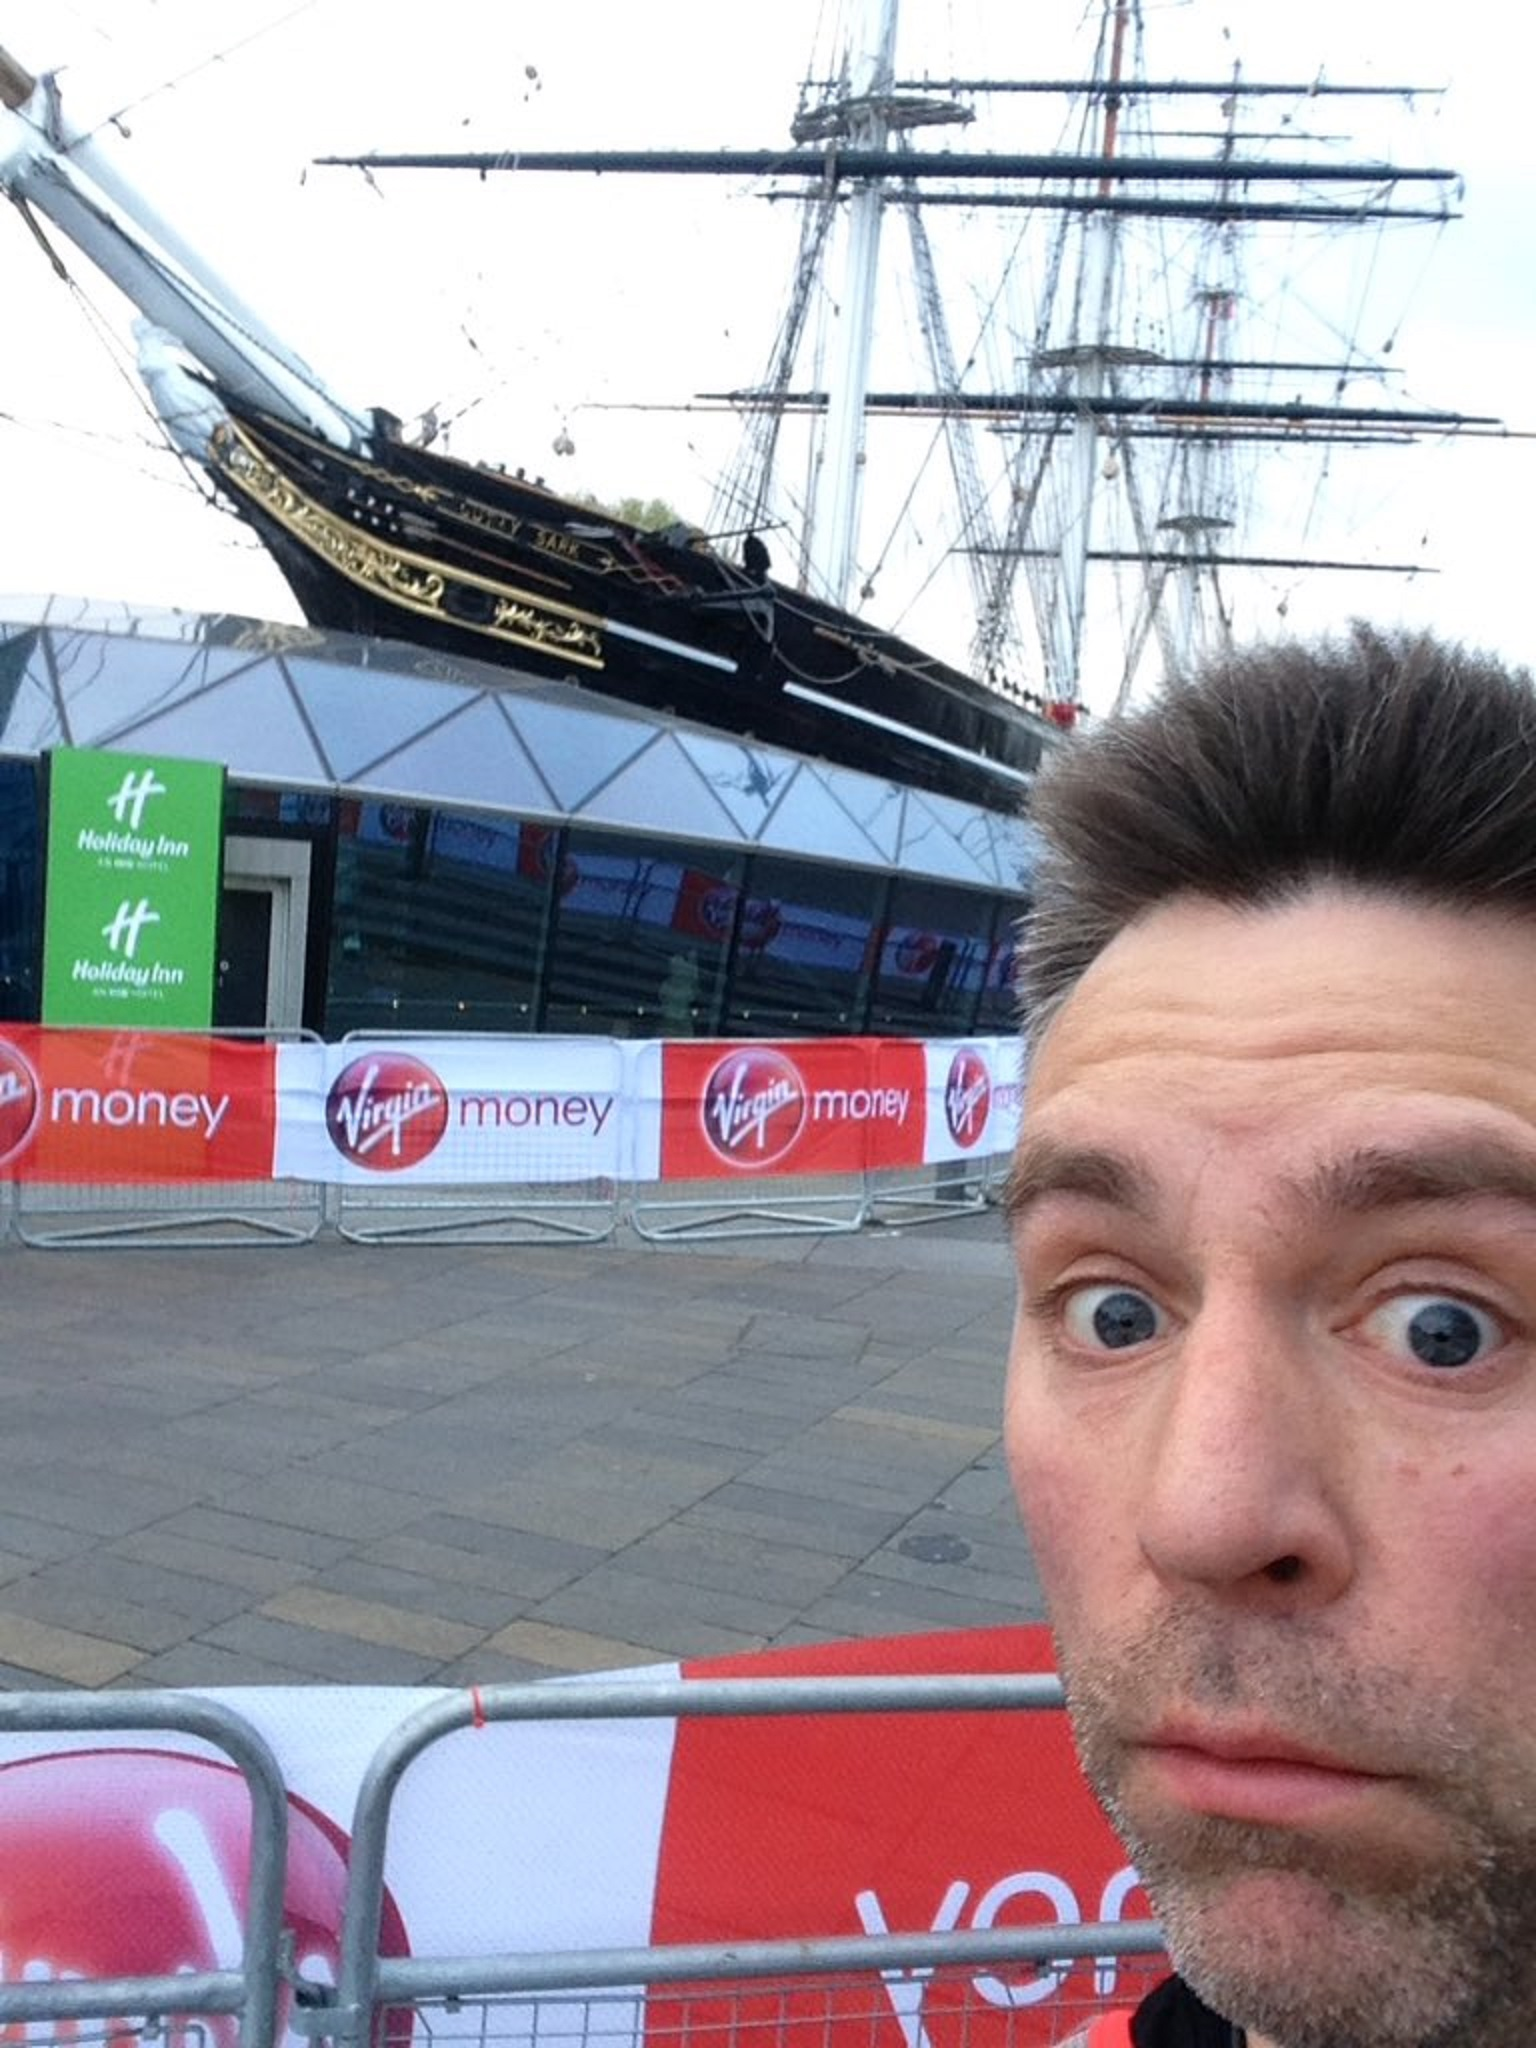 Will Kirk takes in the sights of London during the backwards marathon